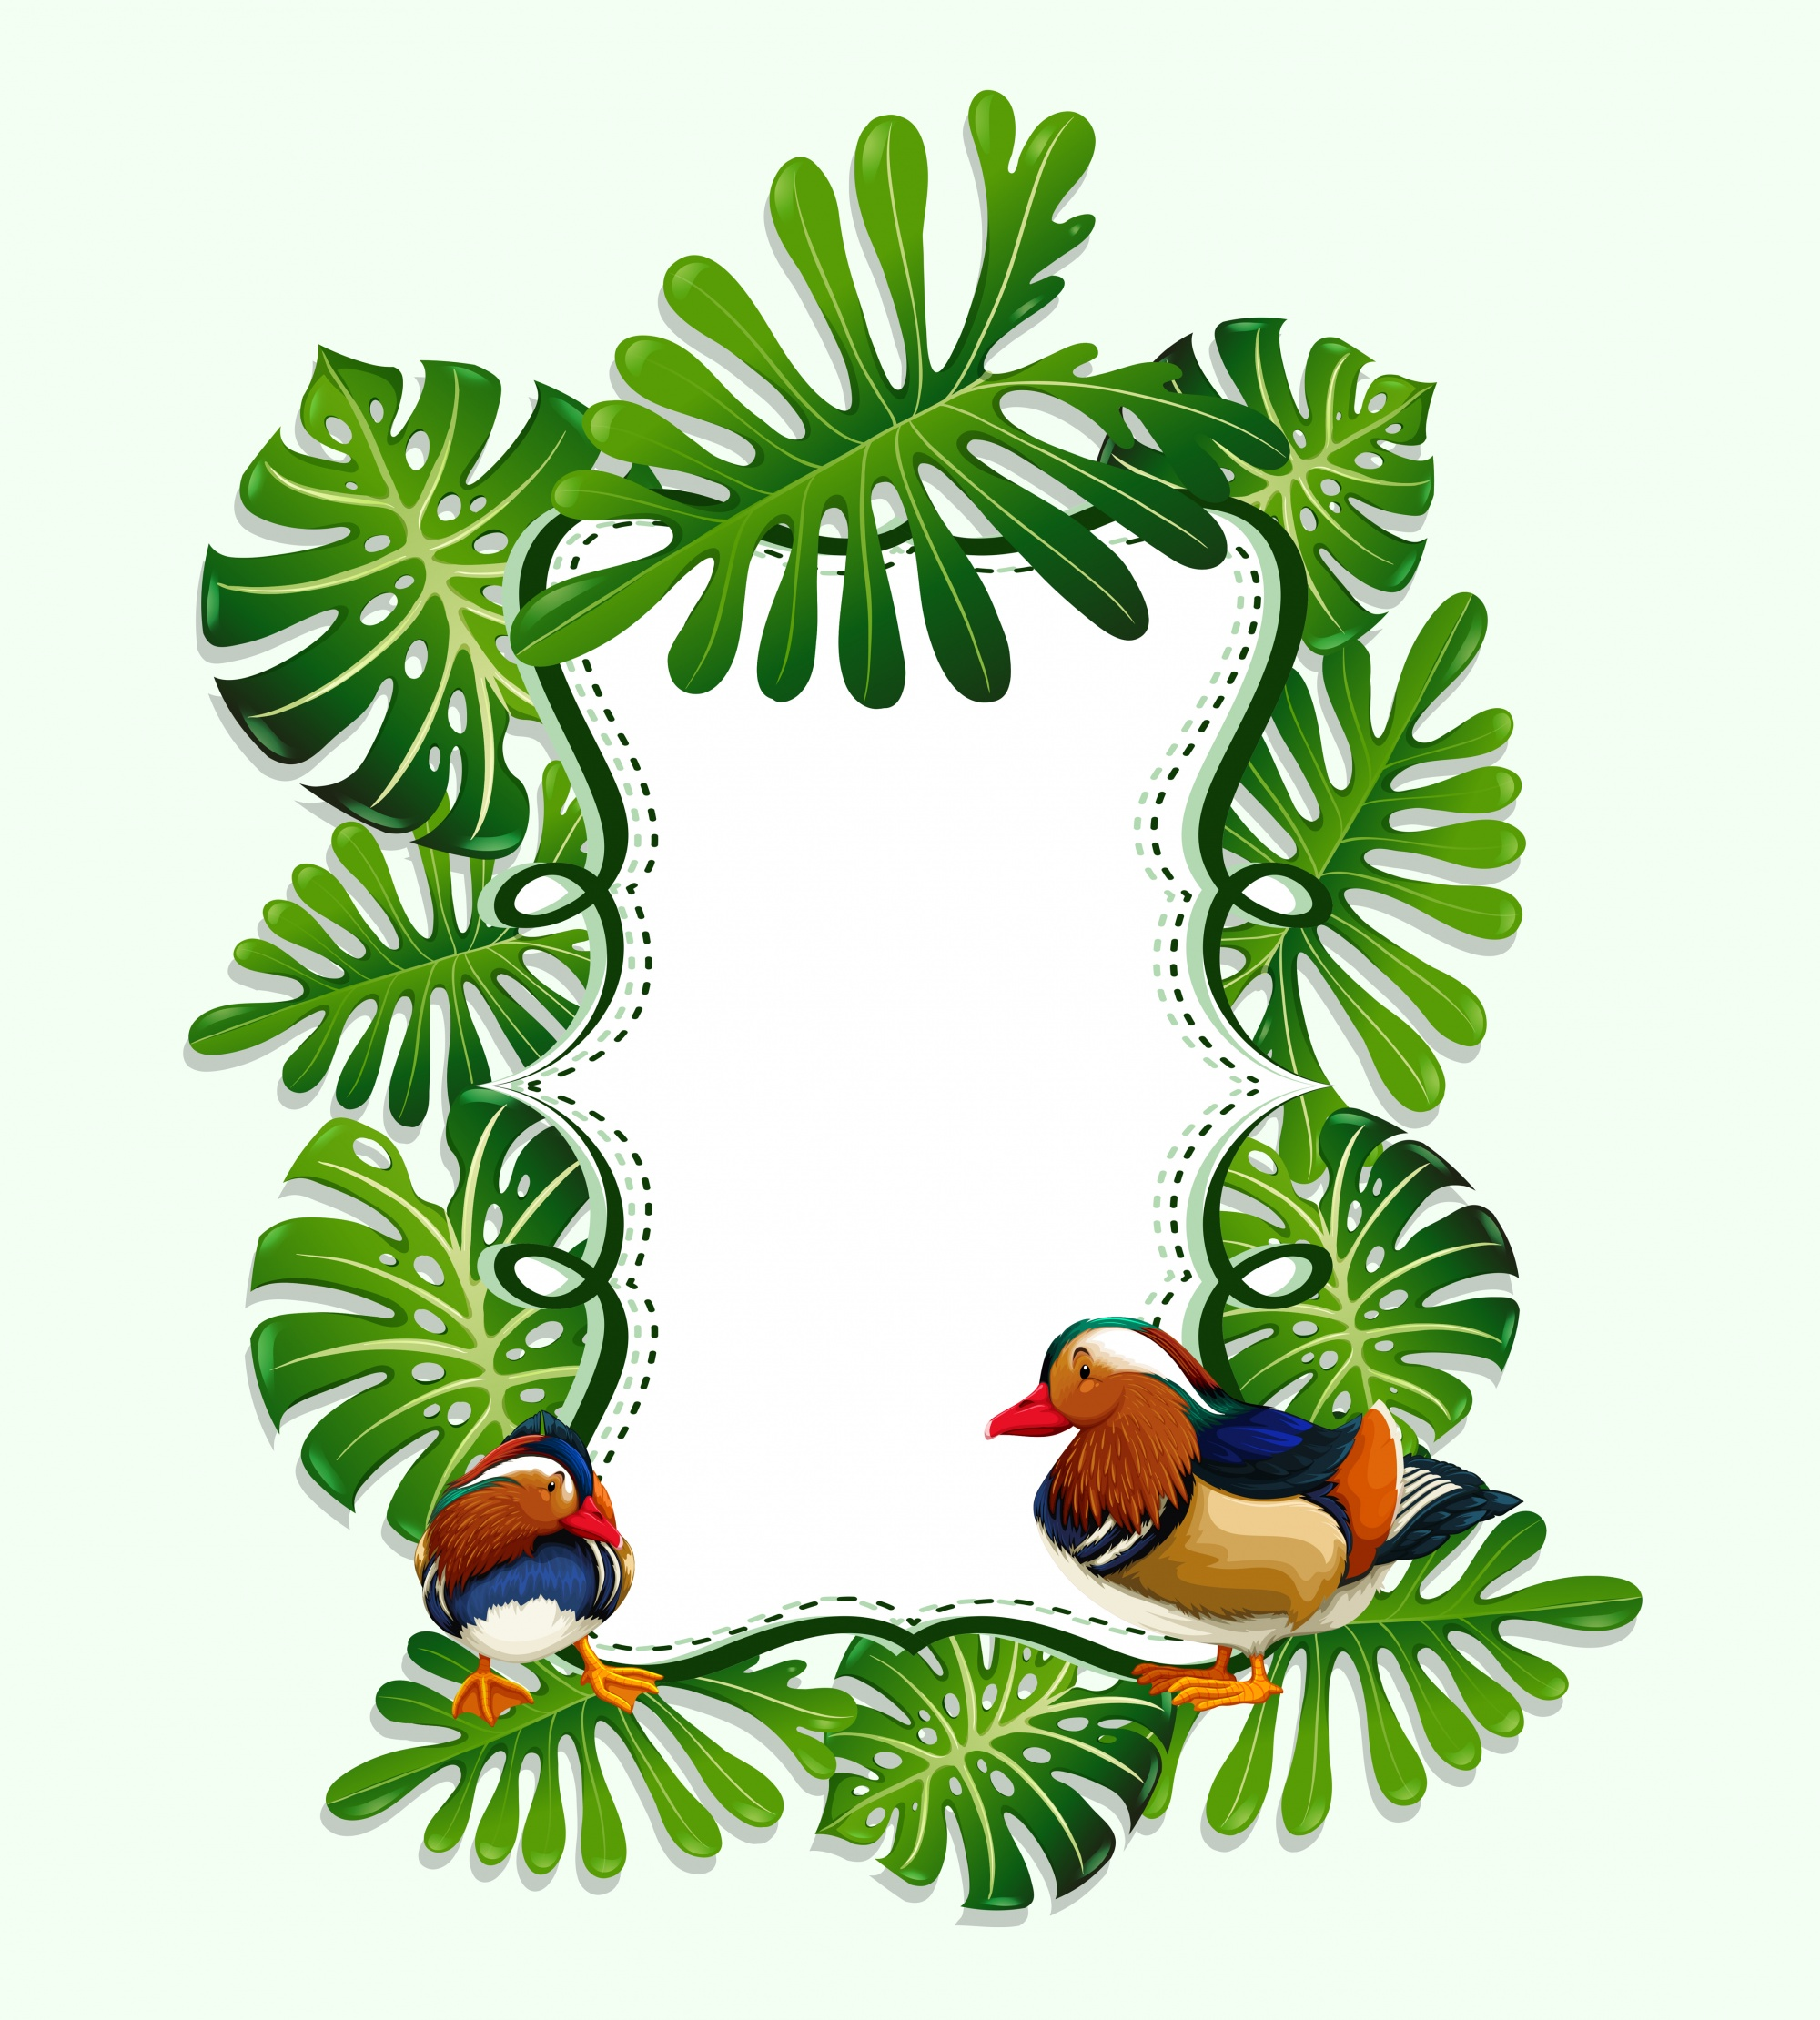 Frame design with leaves and bird